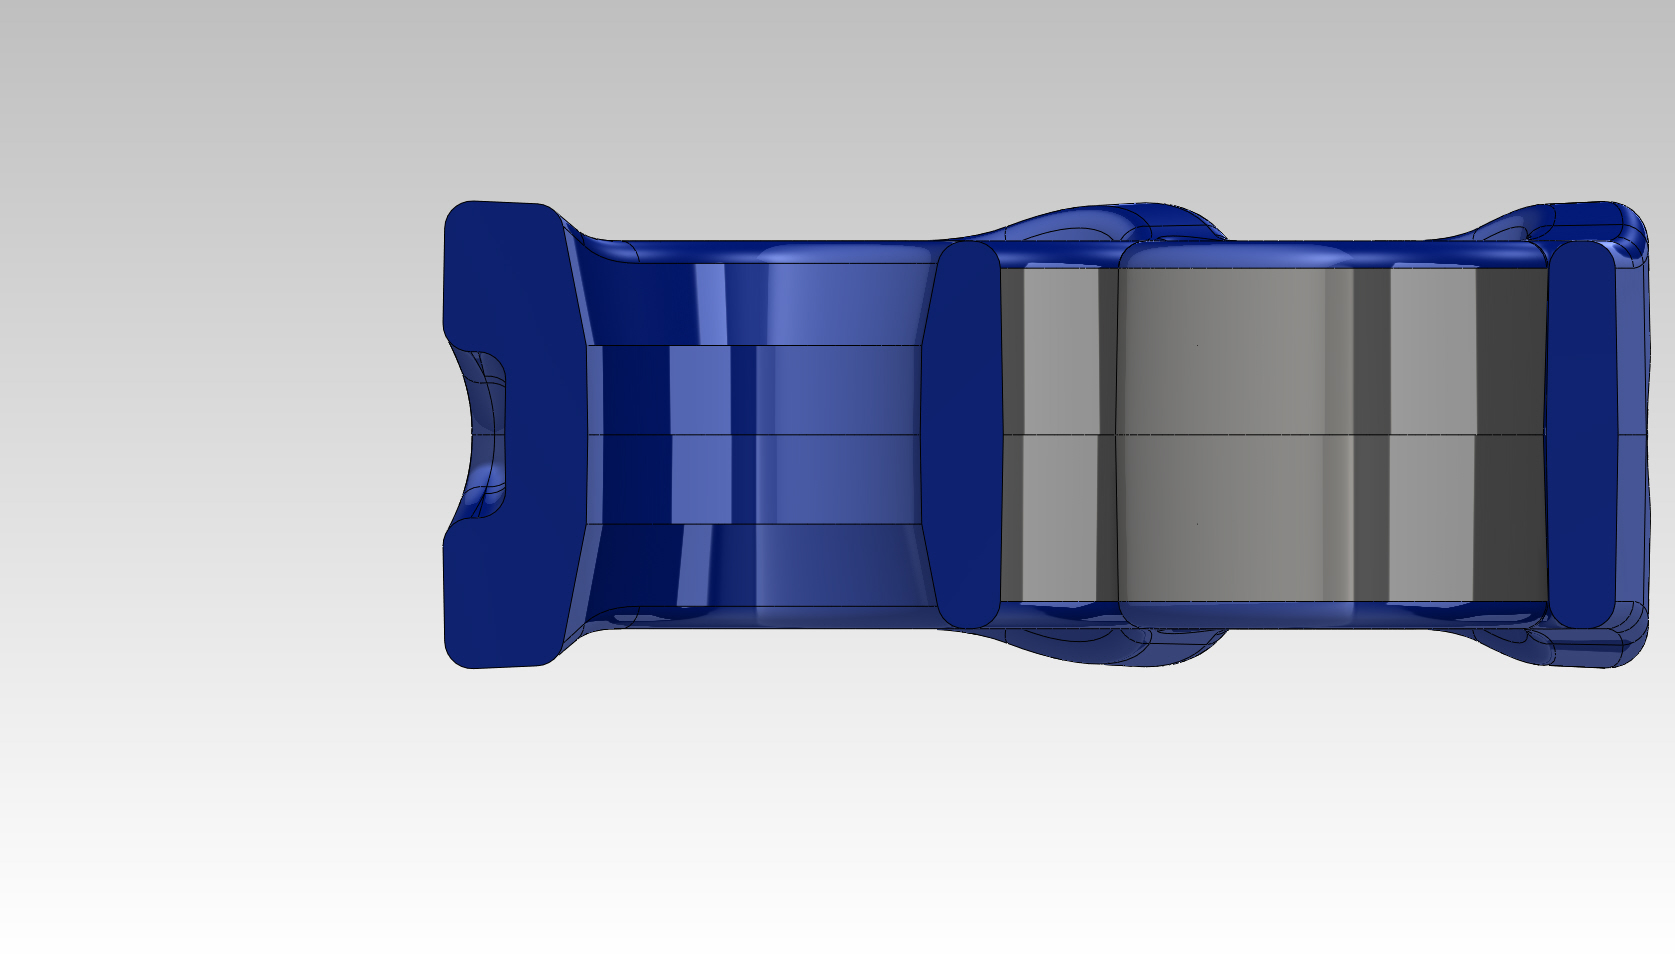 Solidworks prototype model Xband_ver8.5Height of part